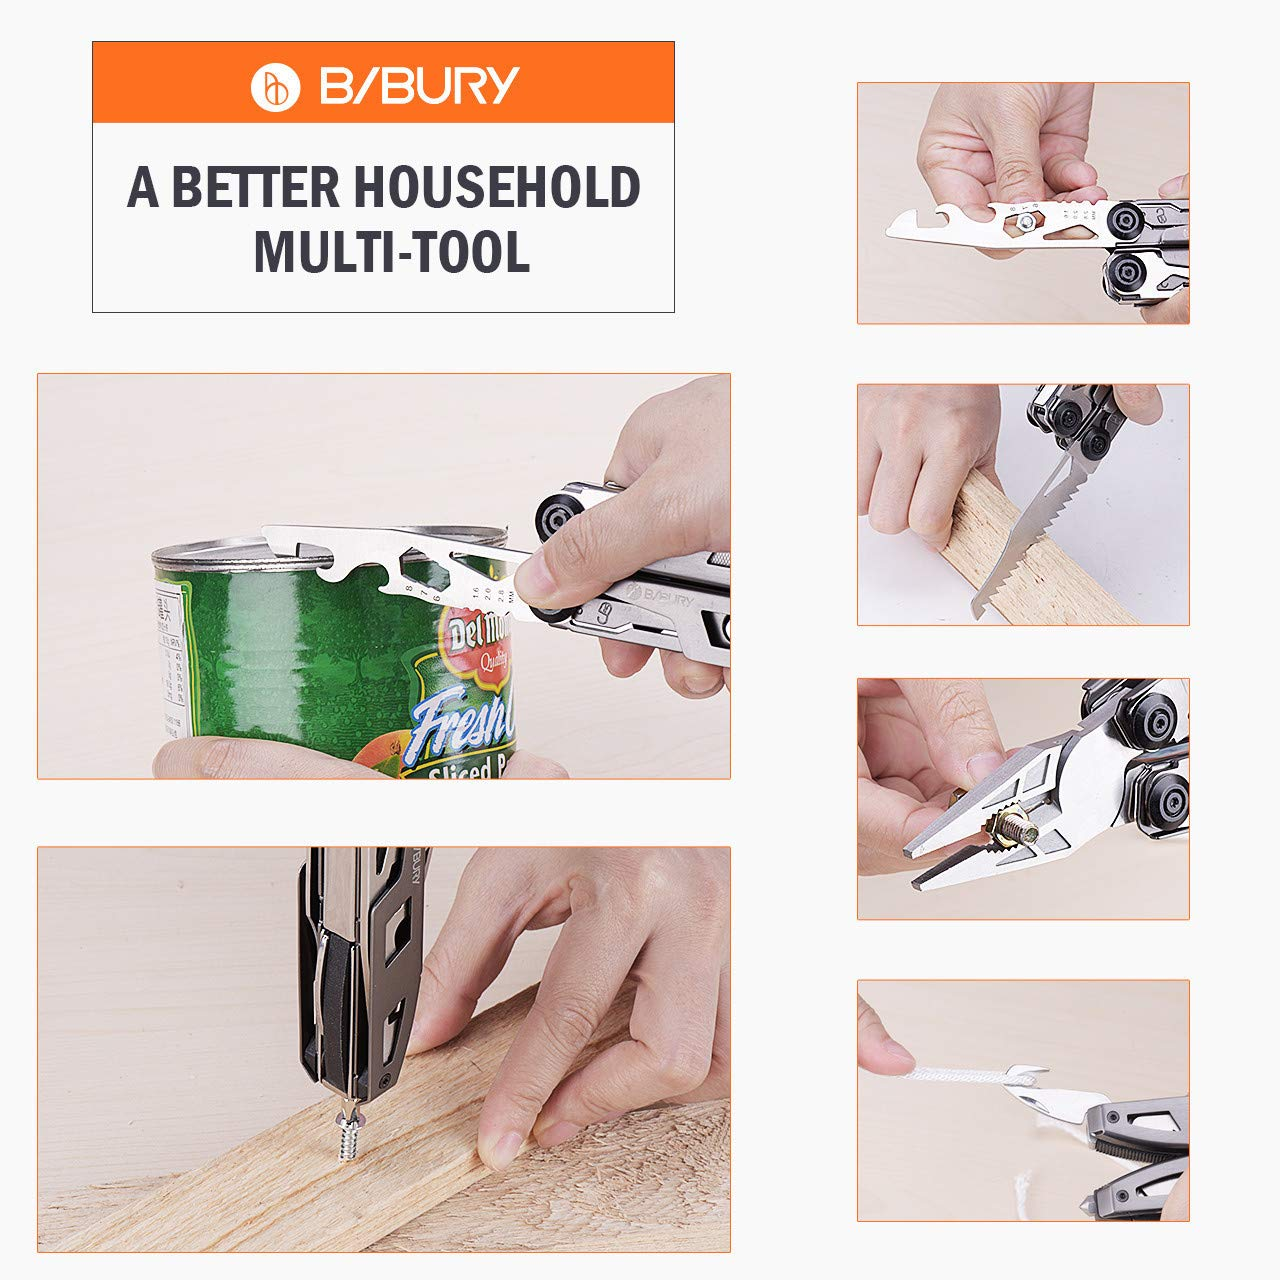 Multitool Pliers,Titanium 18-in-1 Multi-Purpose Pocket Knife Pliers Kit, Durable Stainless Steel Multi-Plier Multi-Tool for Survival, Camping, Hunting, Fishing and Hiking (Titanium 18 in 1) by Bibury (Image #4)